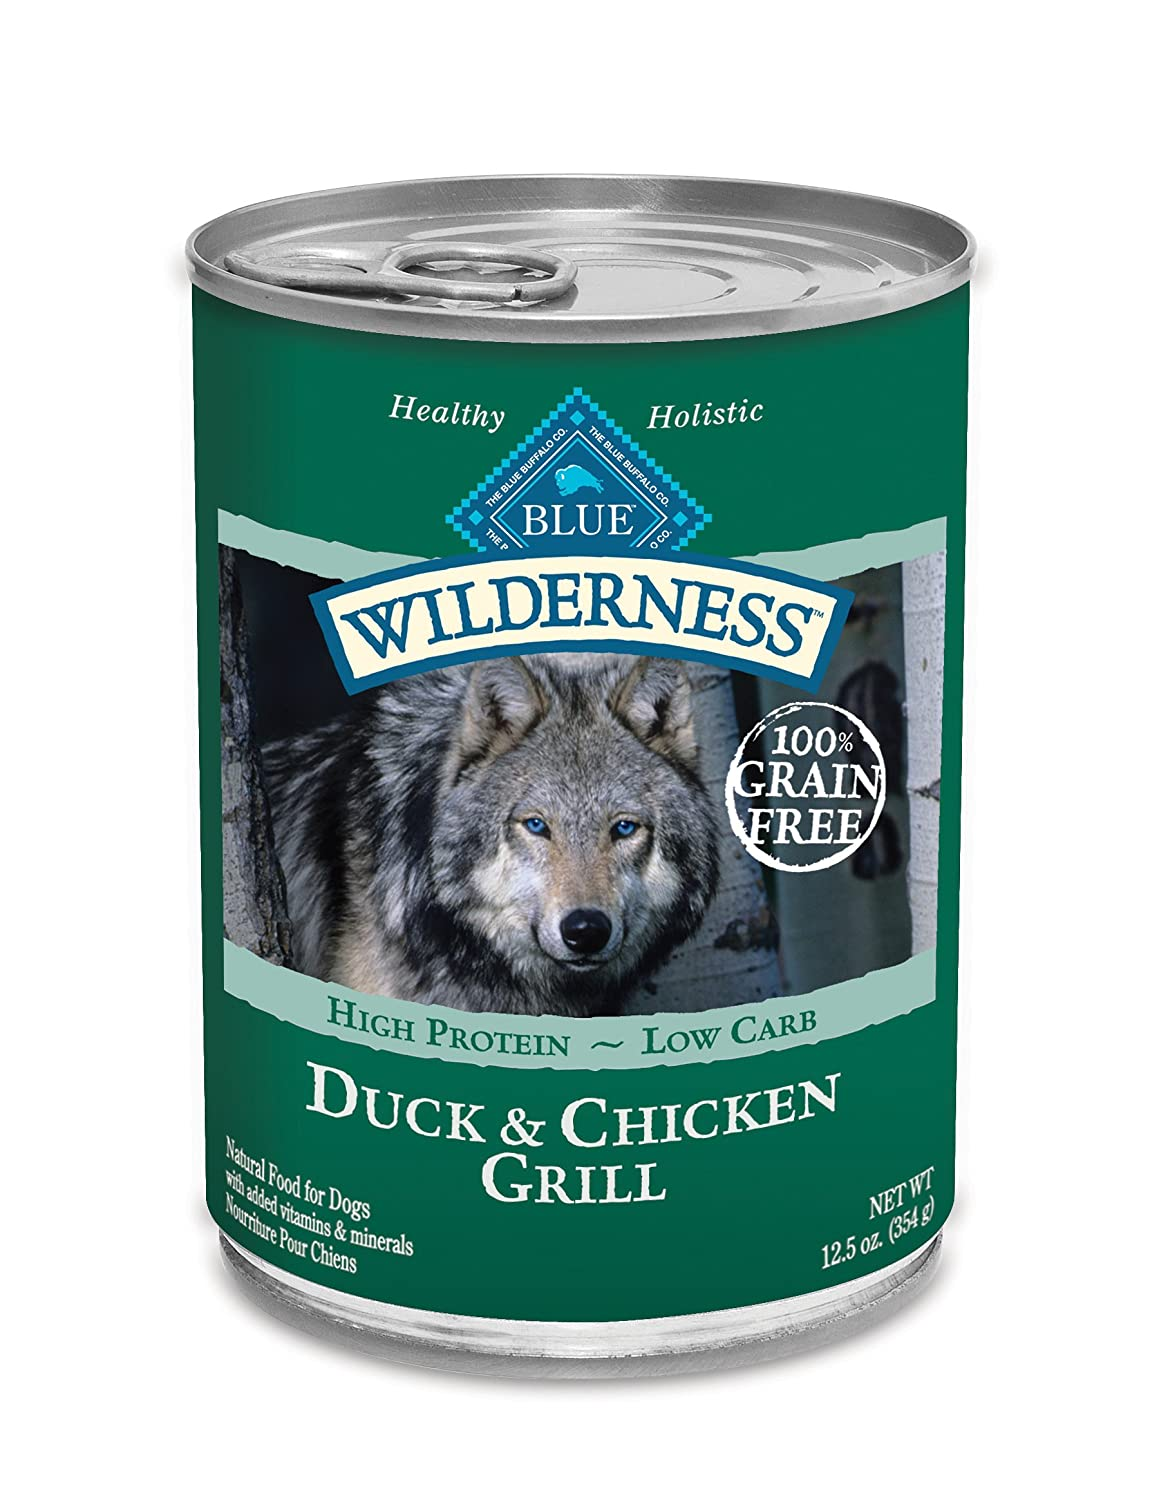 Blue Wilderness Grain Free Canned Dog Food